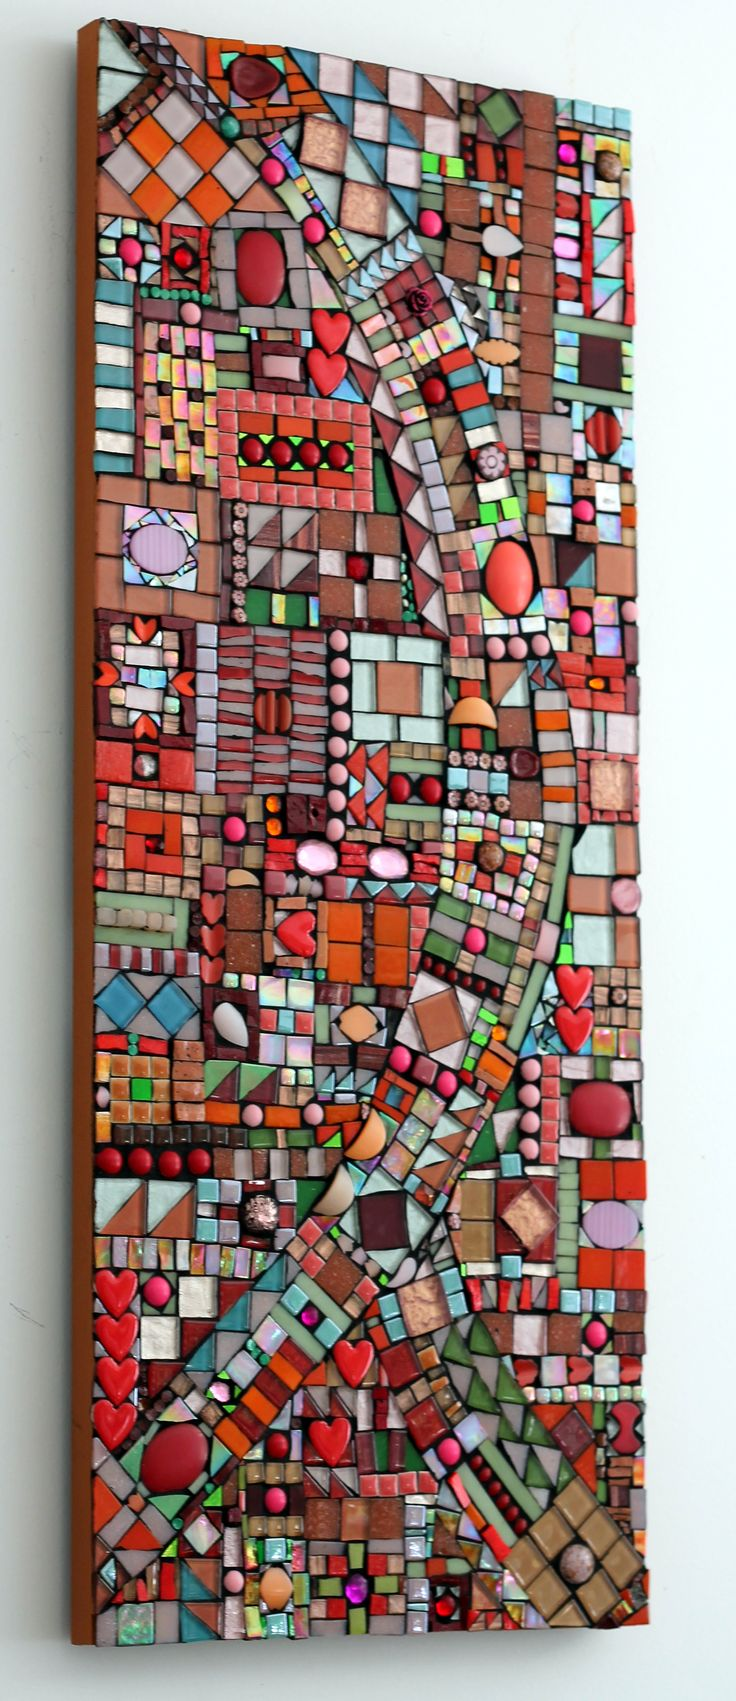 """Checkered Path"".  Intricate collection of vintage and synthetic materials tastefully bring this custom hand cut #mosaic panel alive! Dimensions are 21"" x 36"". Inquiries welcome.  More of Ariel Shoemaker's work can be found on her website at http://www.mosaicsbyariel.com"